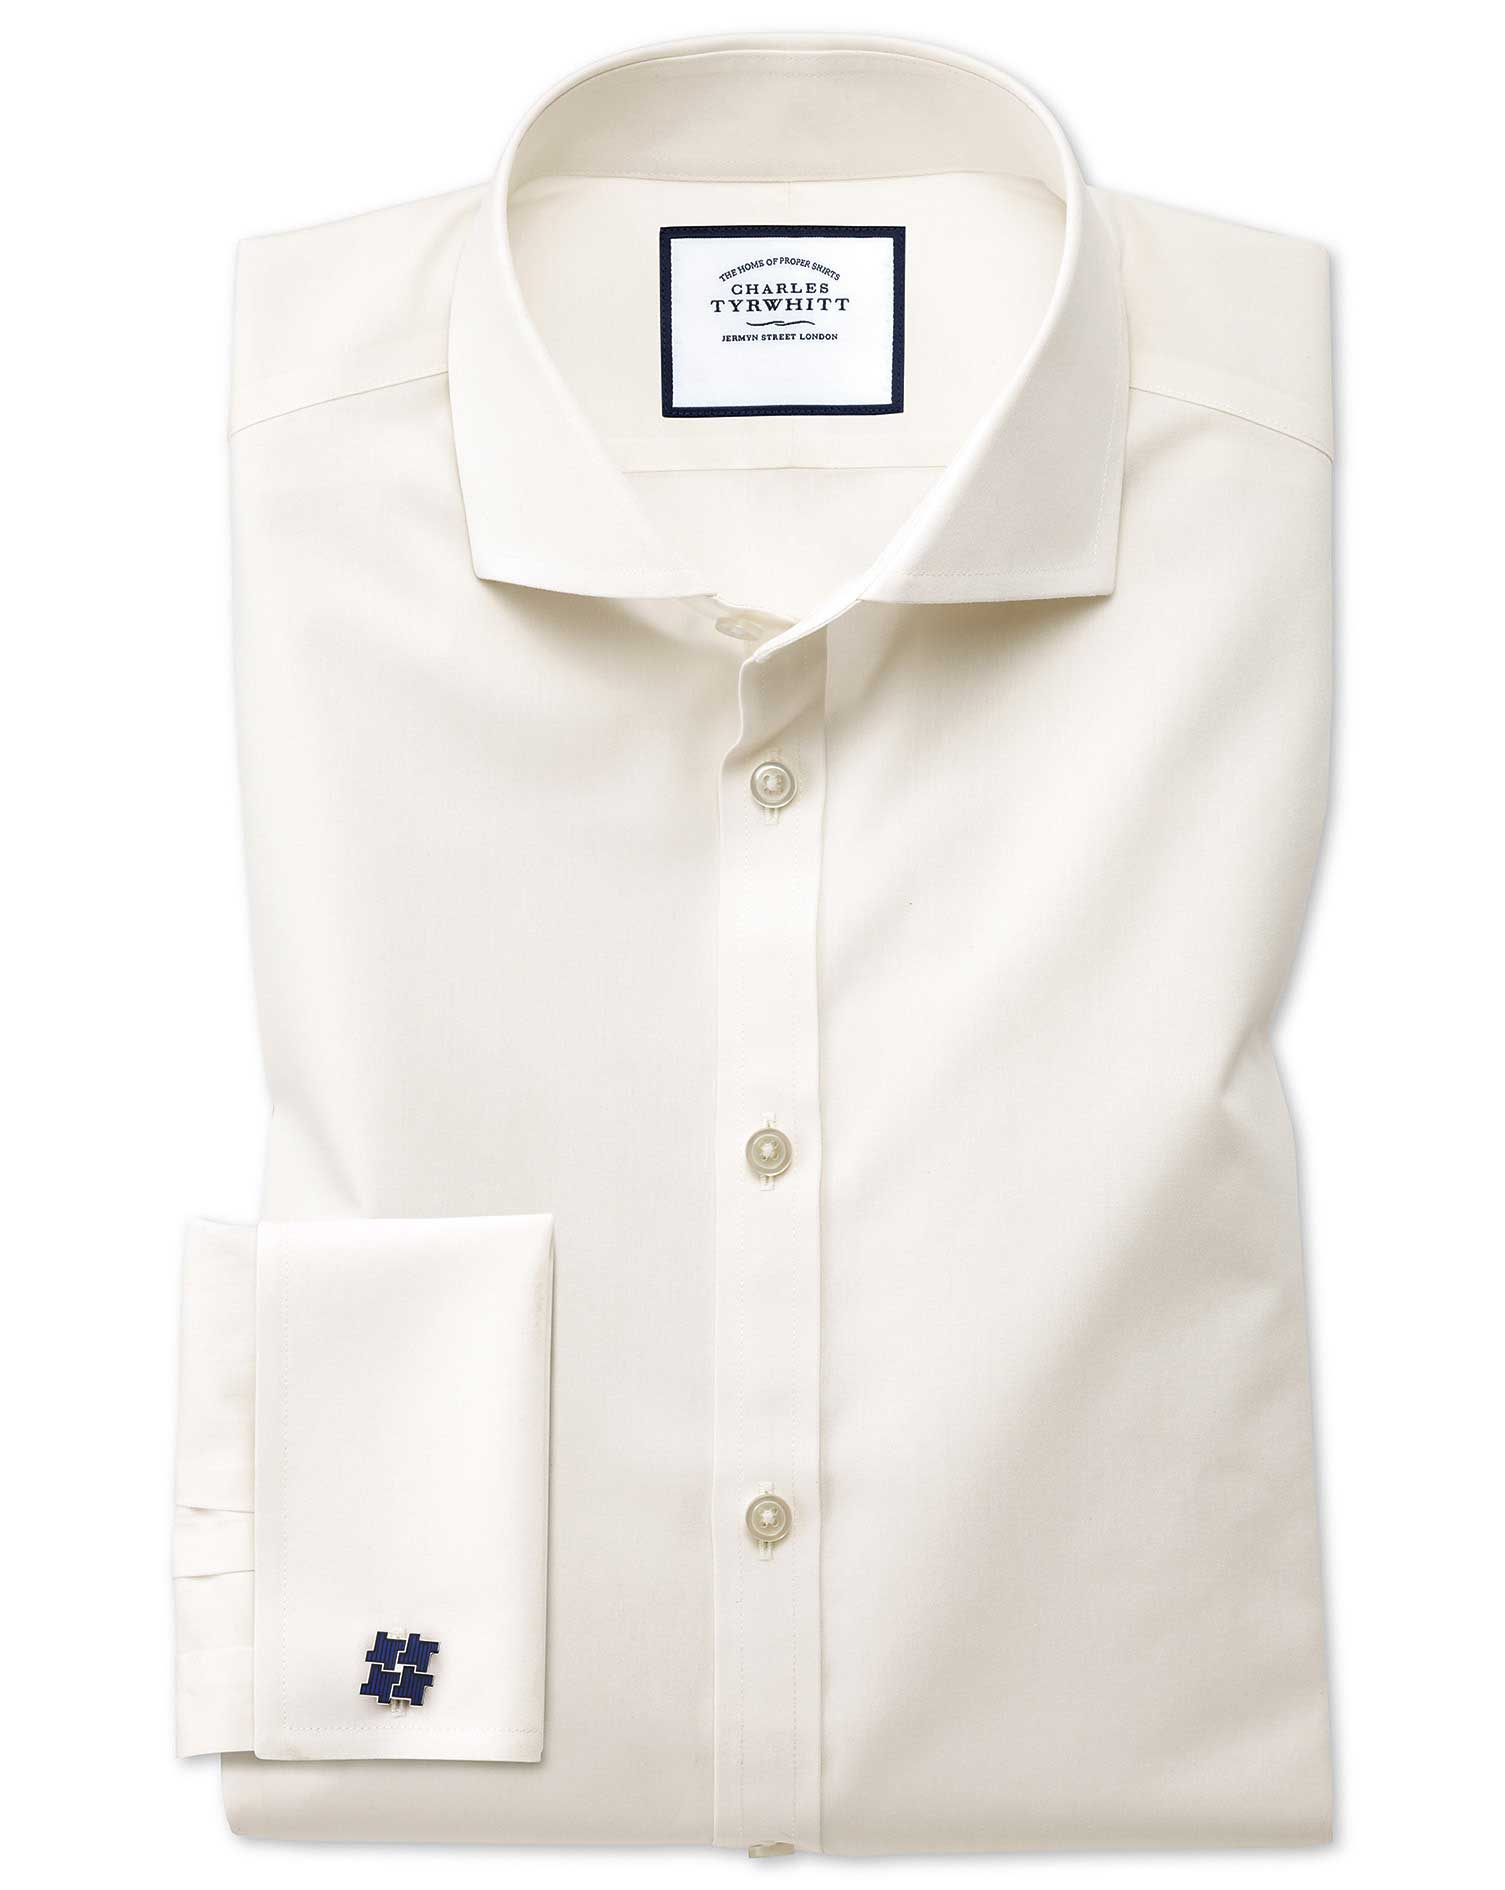 Extra Slim Fit Cutaway Non-Iron Poplin Cream Cotton Formal Shirt Single Cuff Size 14.5/32 by Charles